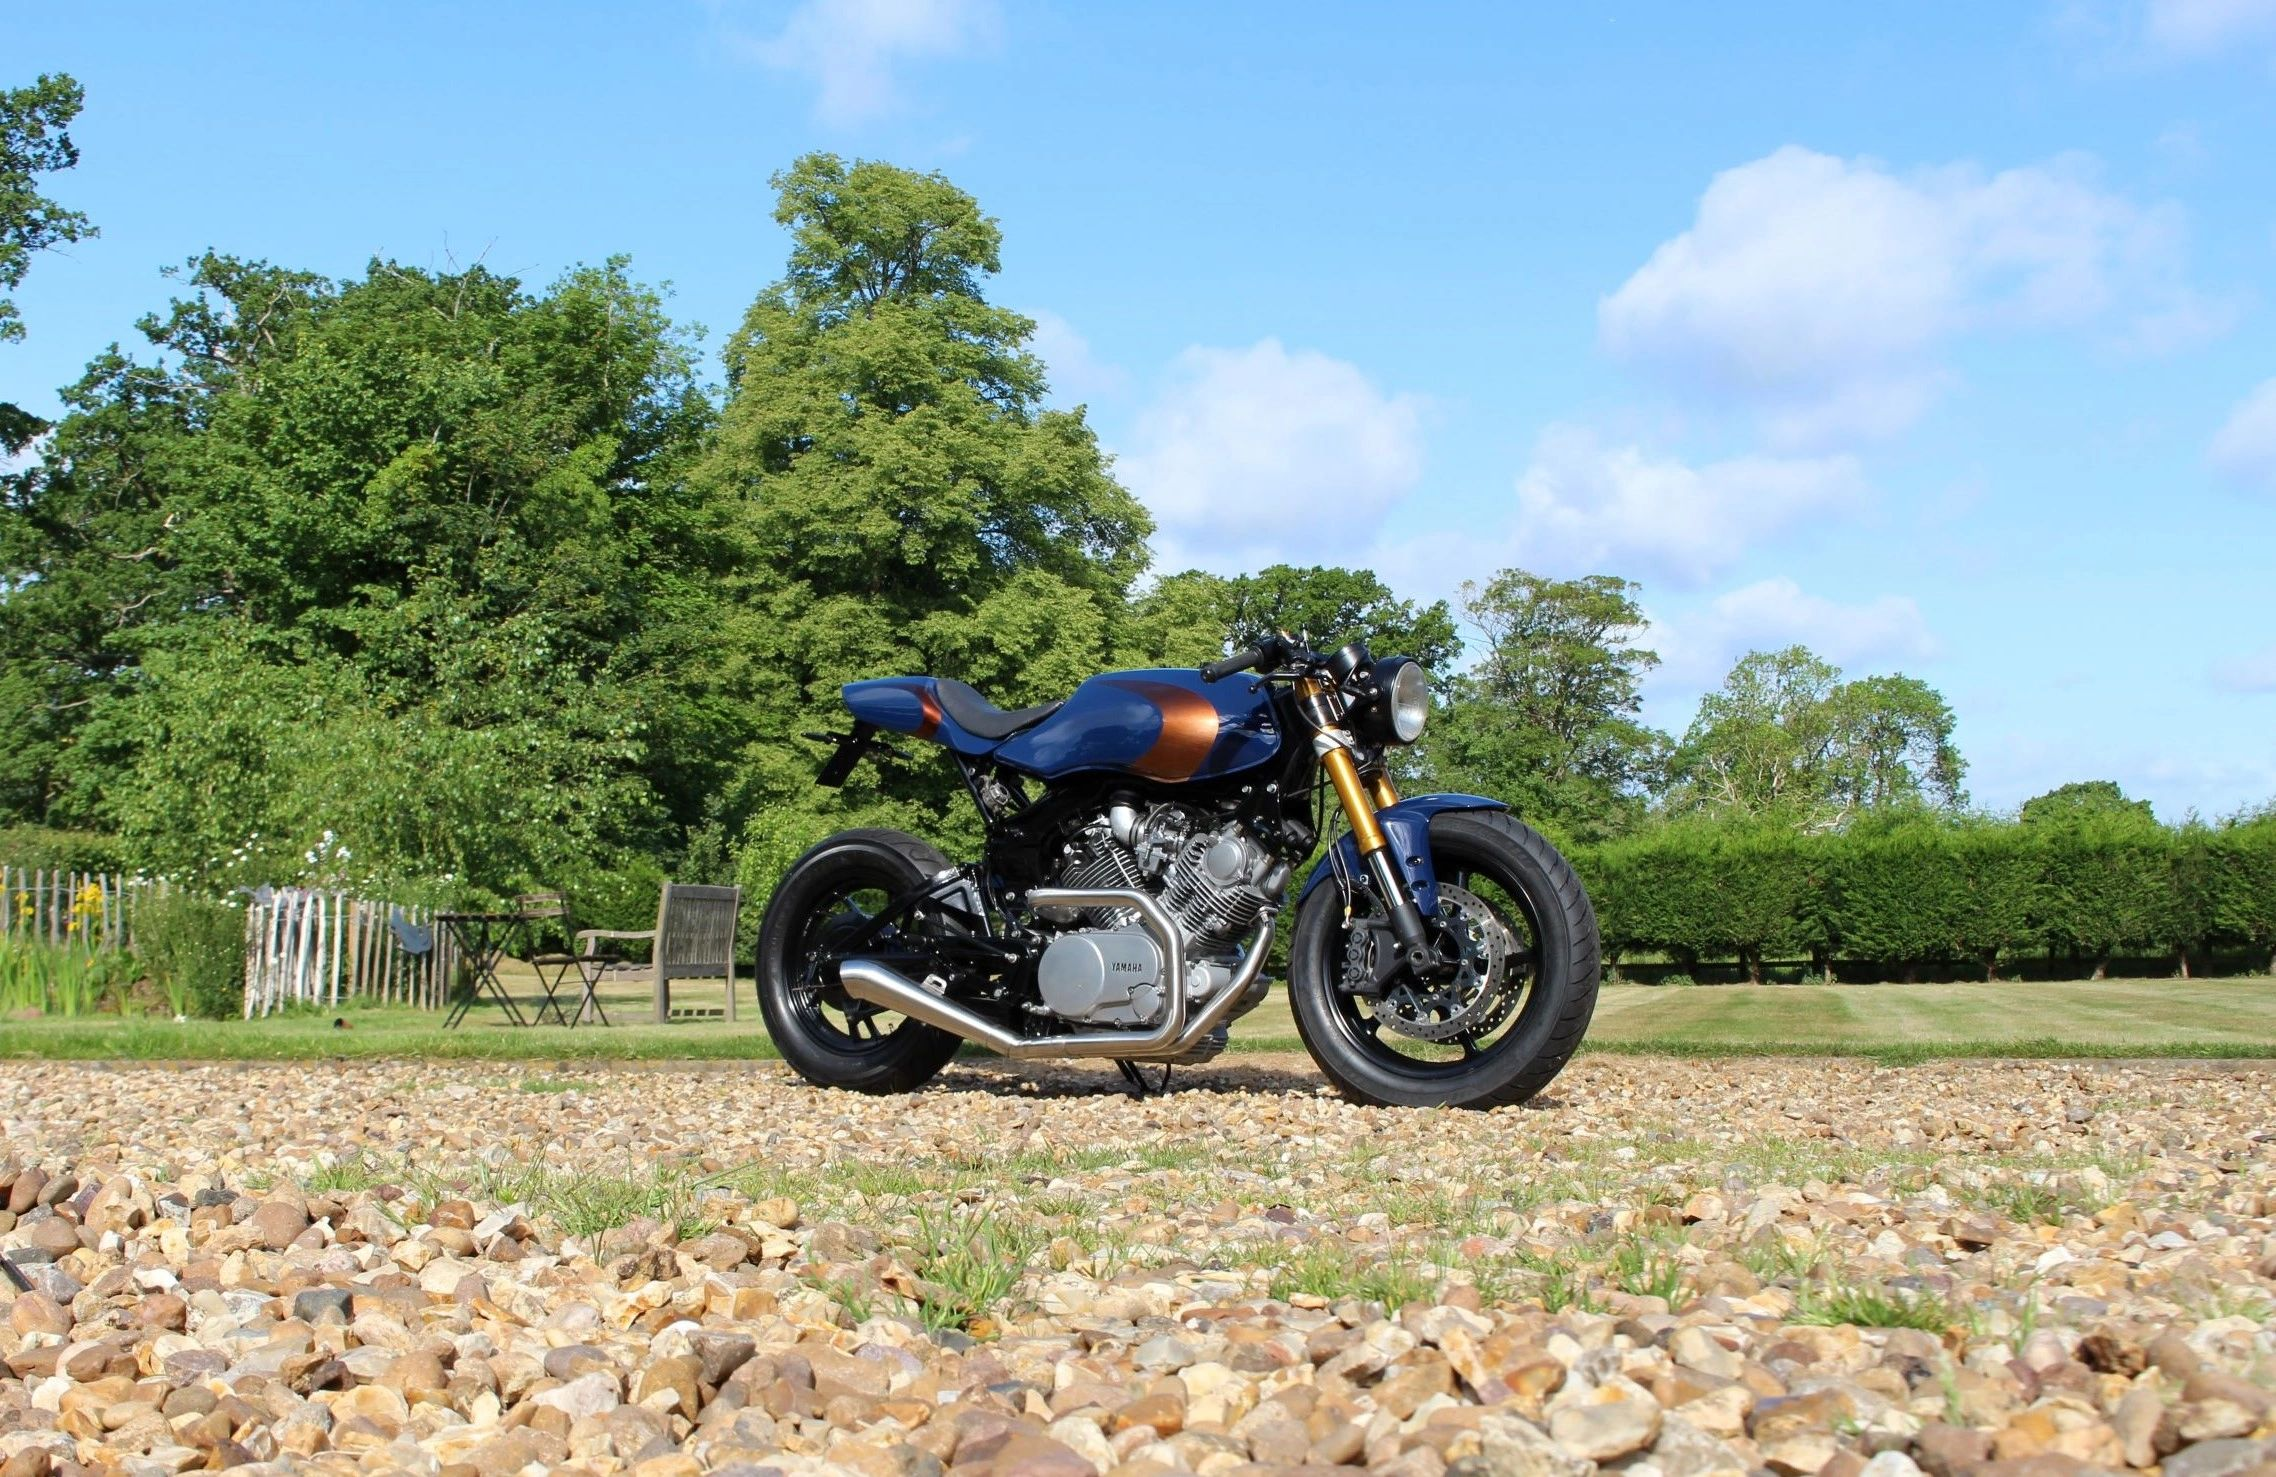 ASE Custom motorcycles Yamaha Virago XV920 Cafe racer West Midlands Coventry Blue and bronze exhaust